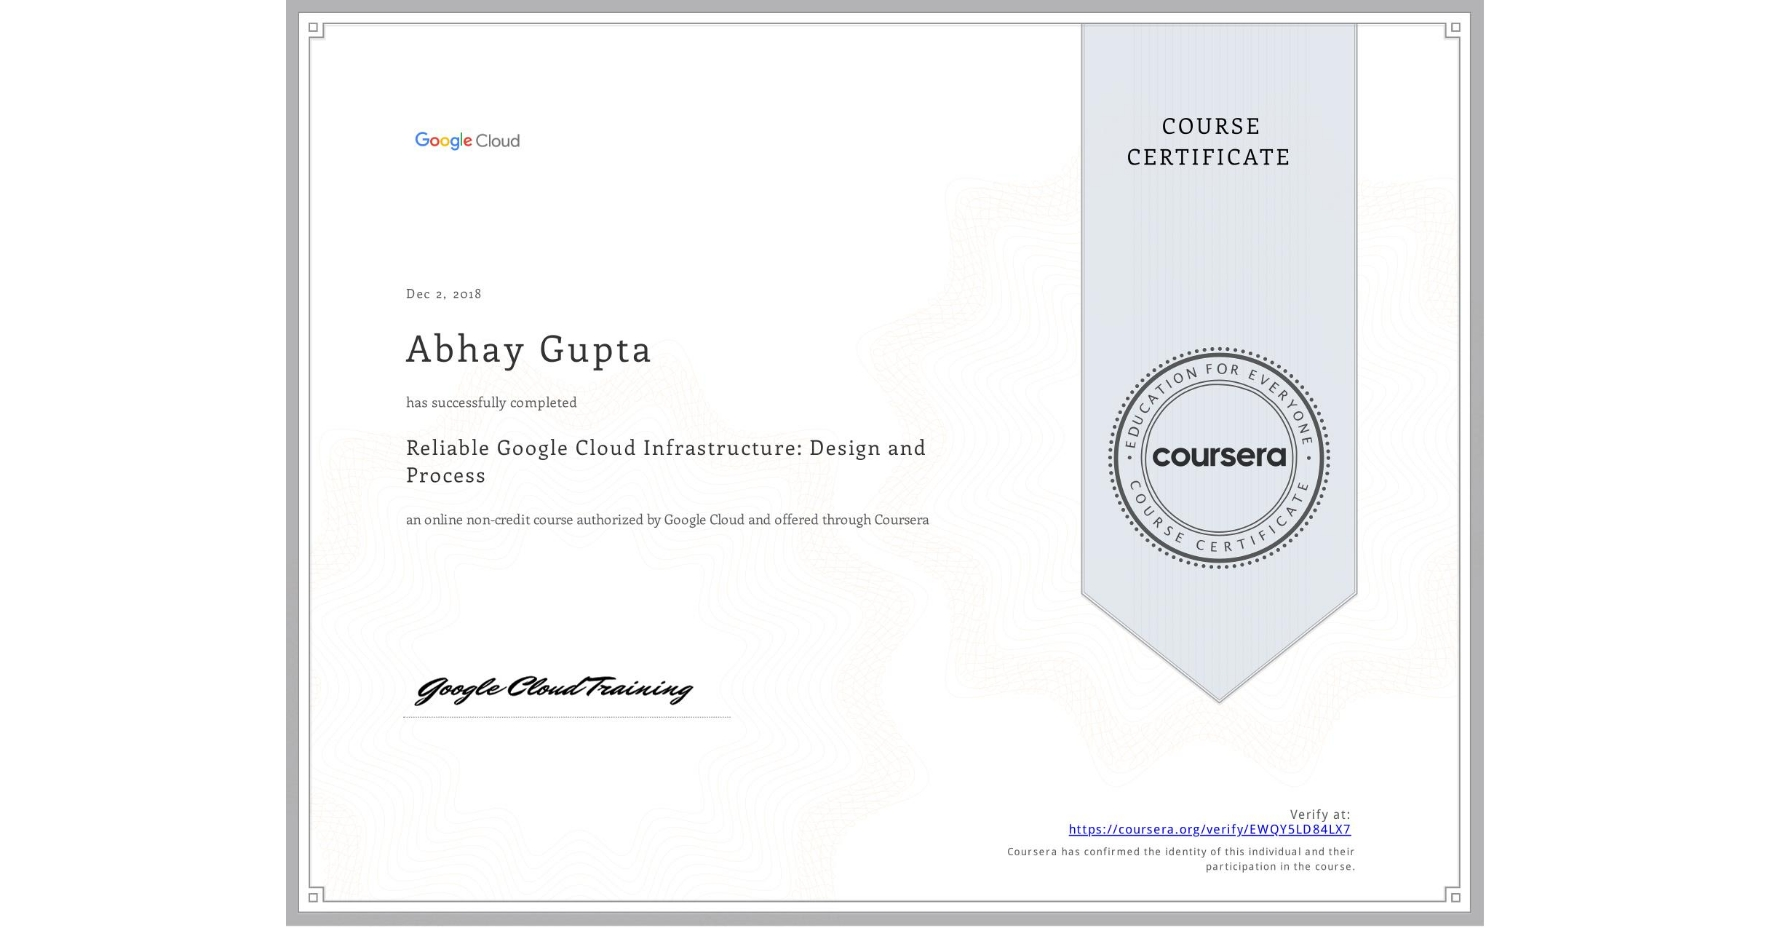 View certificate for Abhay Gupta, Reliable Google Cloud Infrastructure: Design and Process, an online non-credit course authorized by Google Cloud and offered through Coursera